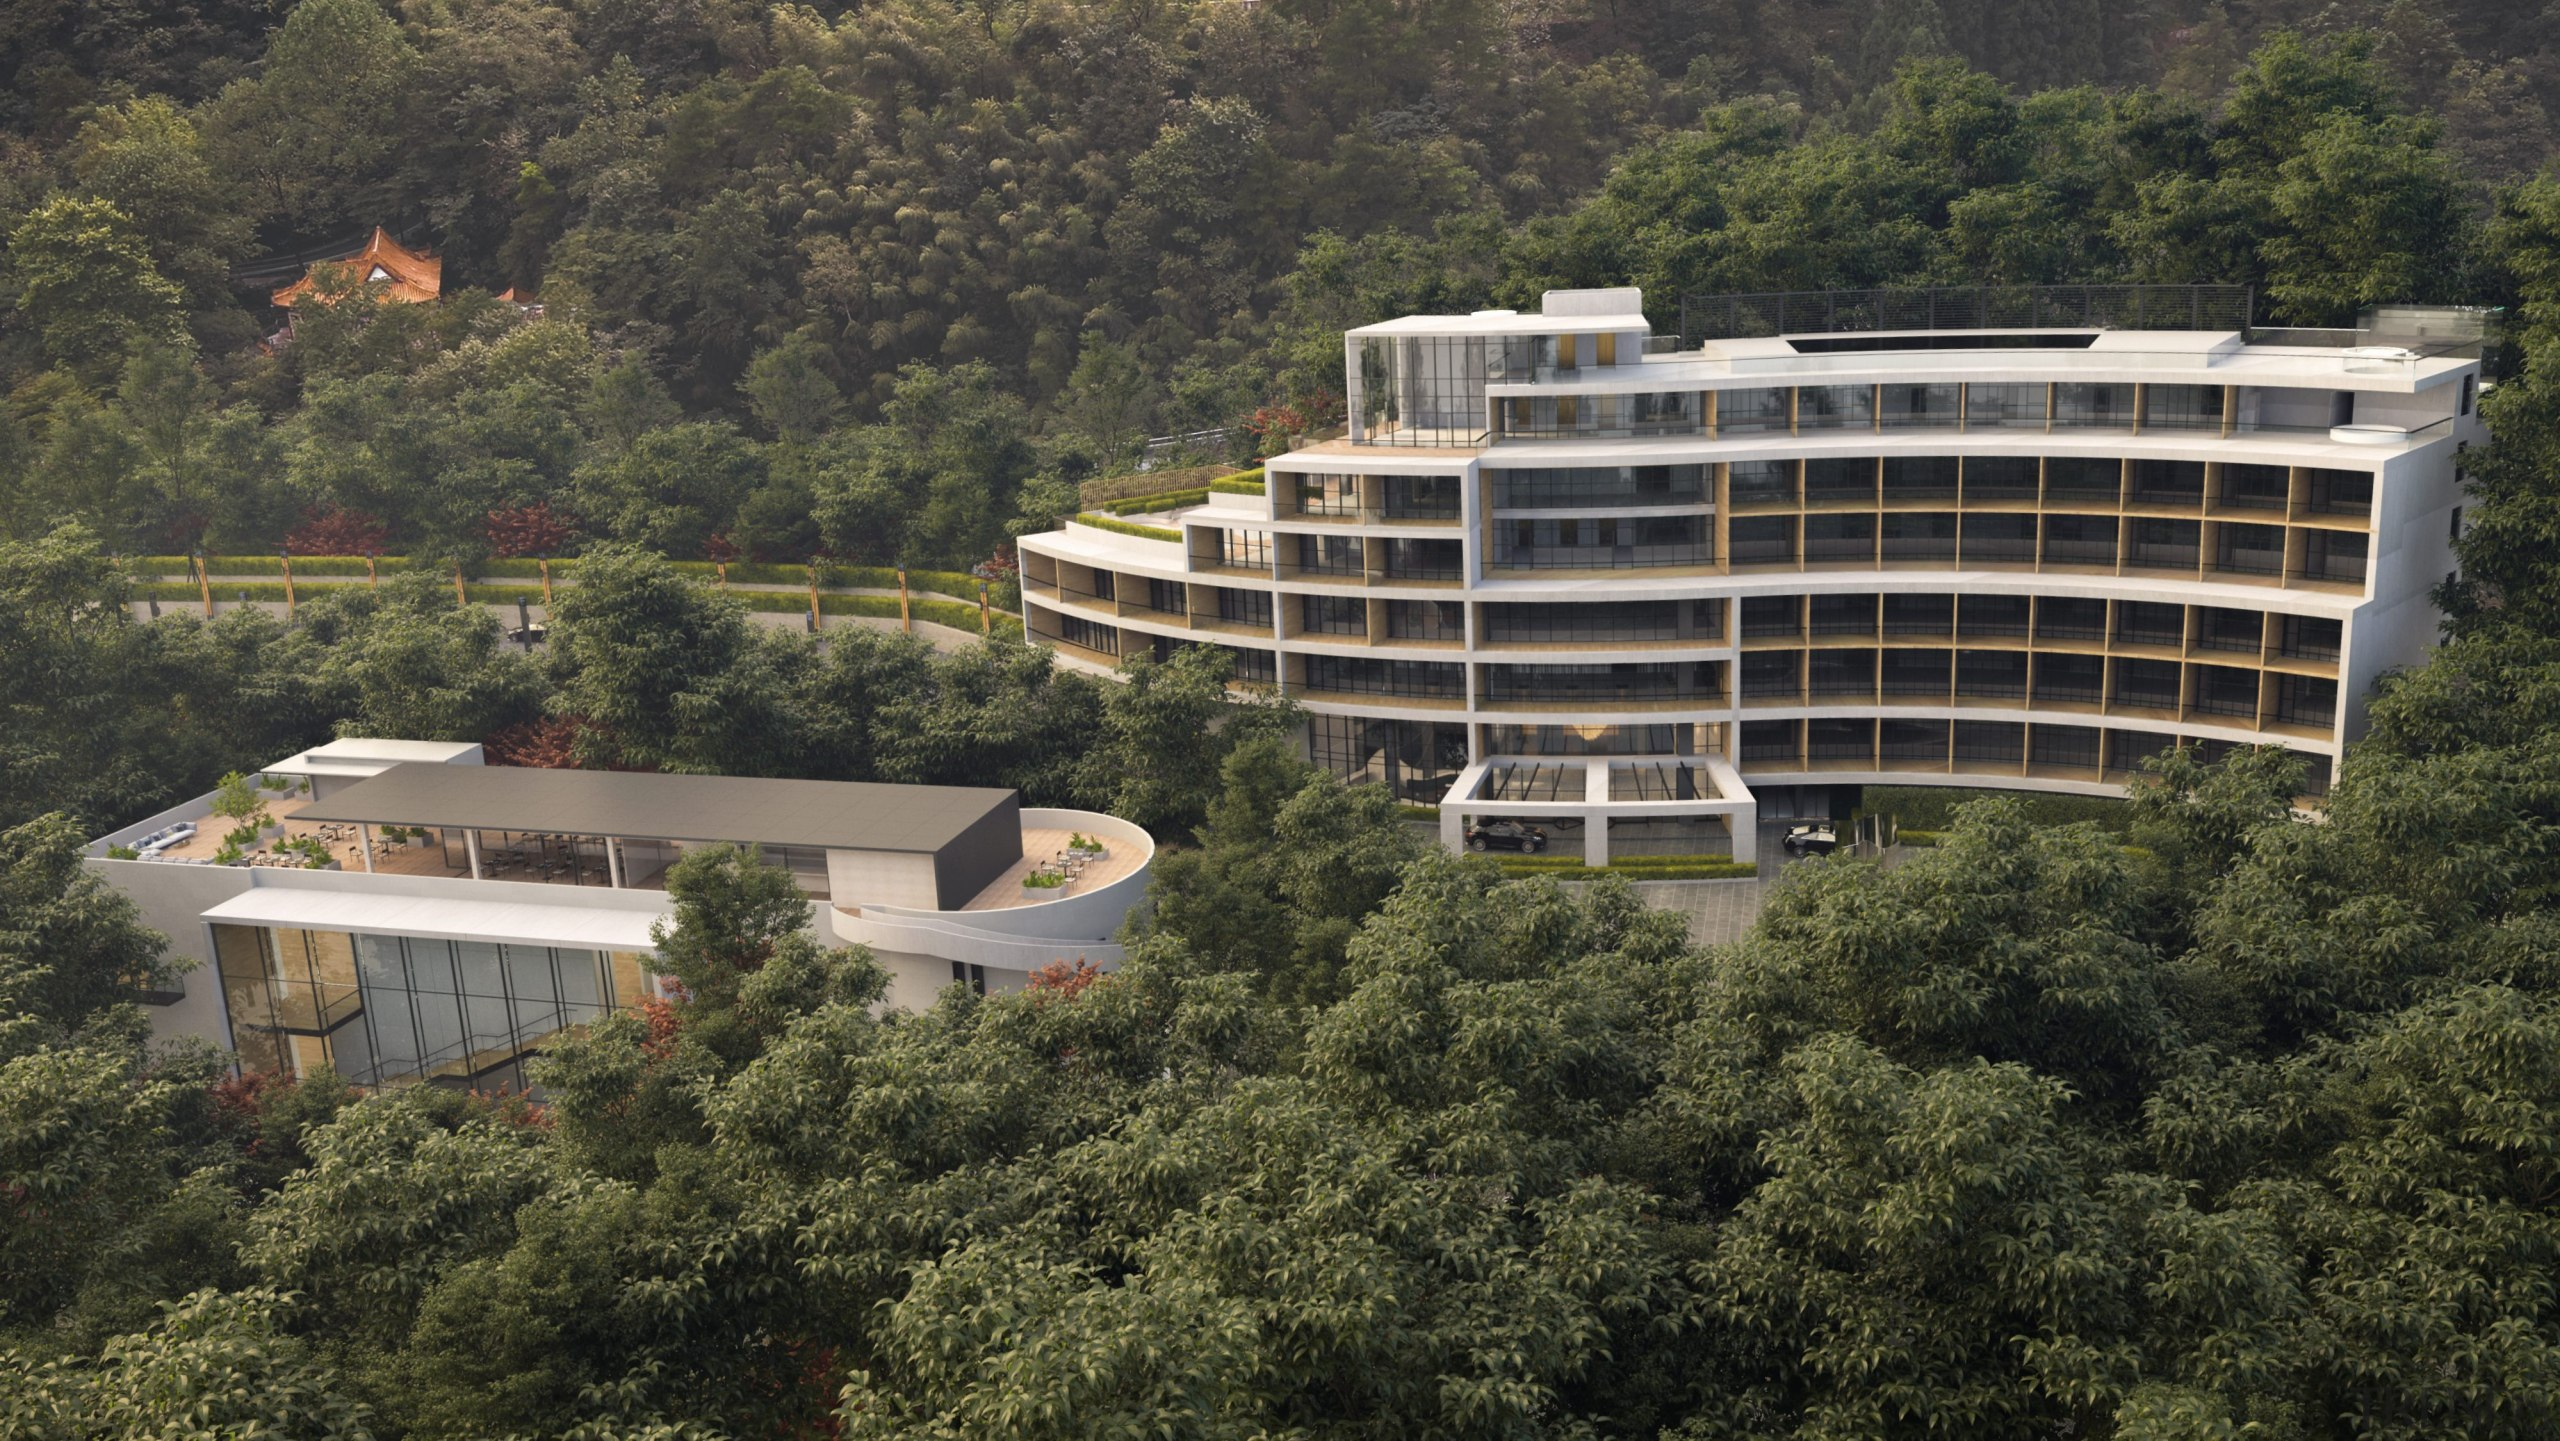 Designed by Bonham Architecture and Interiors this hotel architecture, hotel, China, bird's-eye view, building, city, condominium, hill station, landscape, mixed-use, property, real estate, residential area, urban design, black, brown